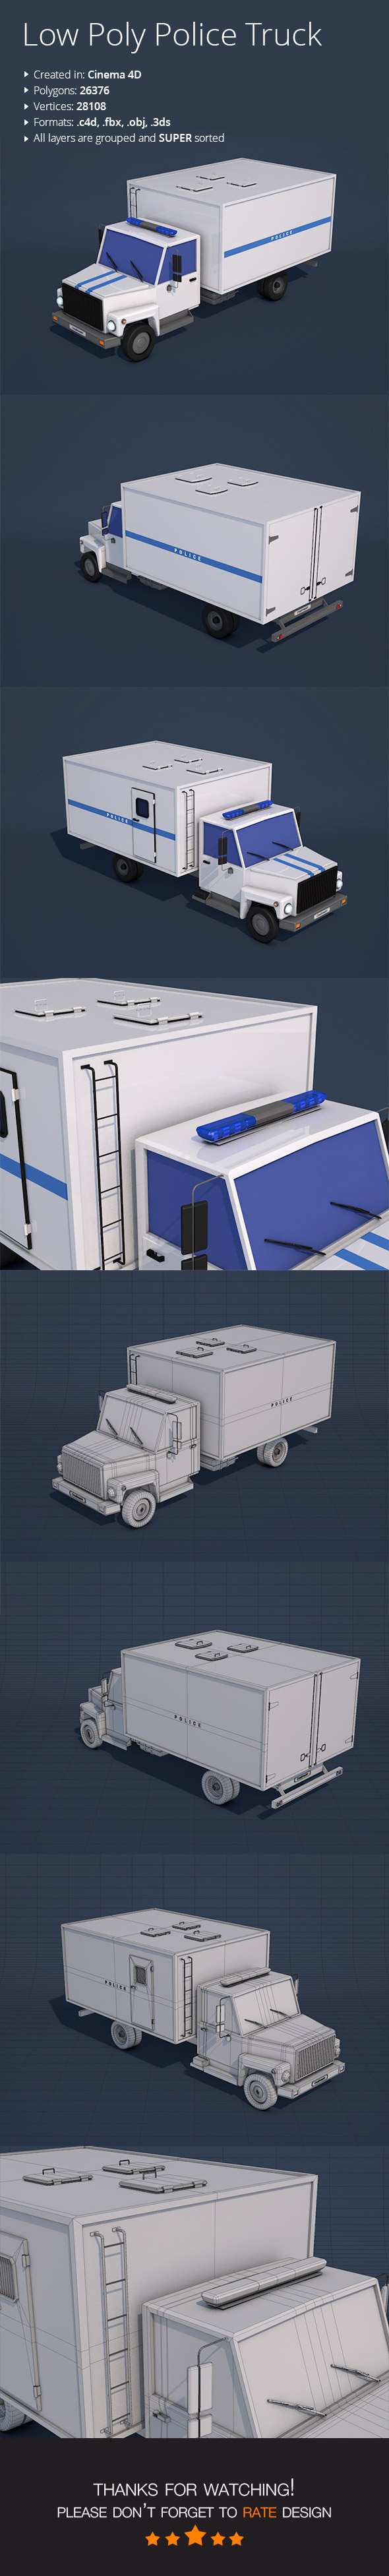 Low Poly Police Truck - 3DOcean Item for Sale